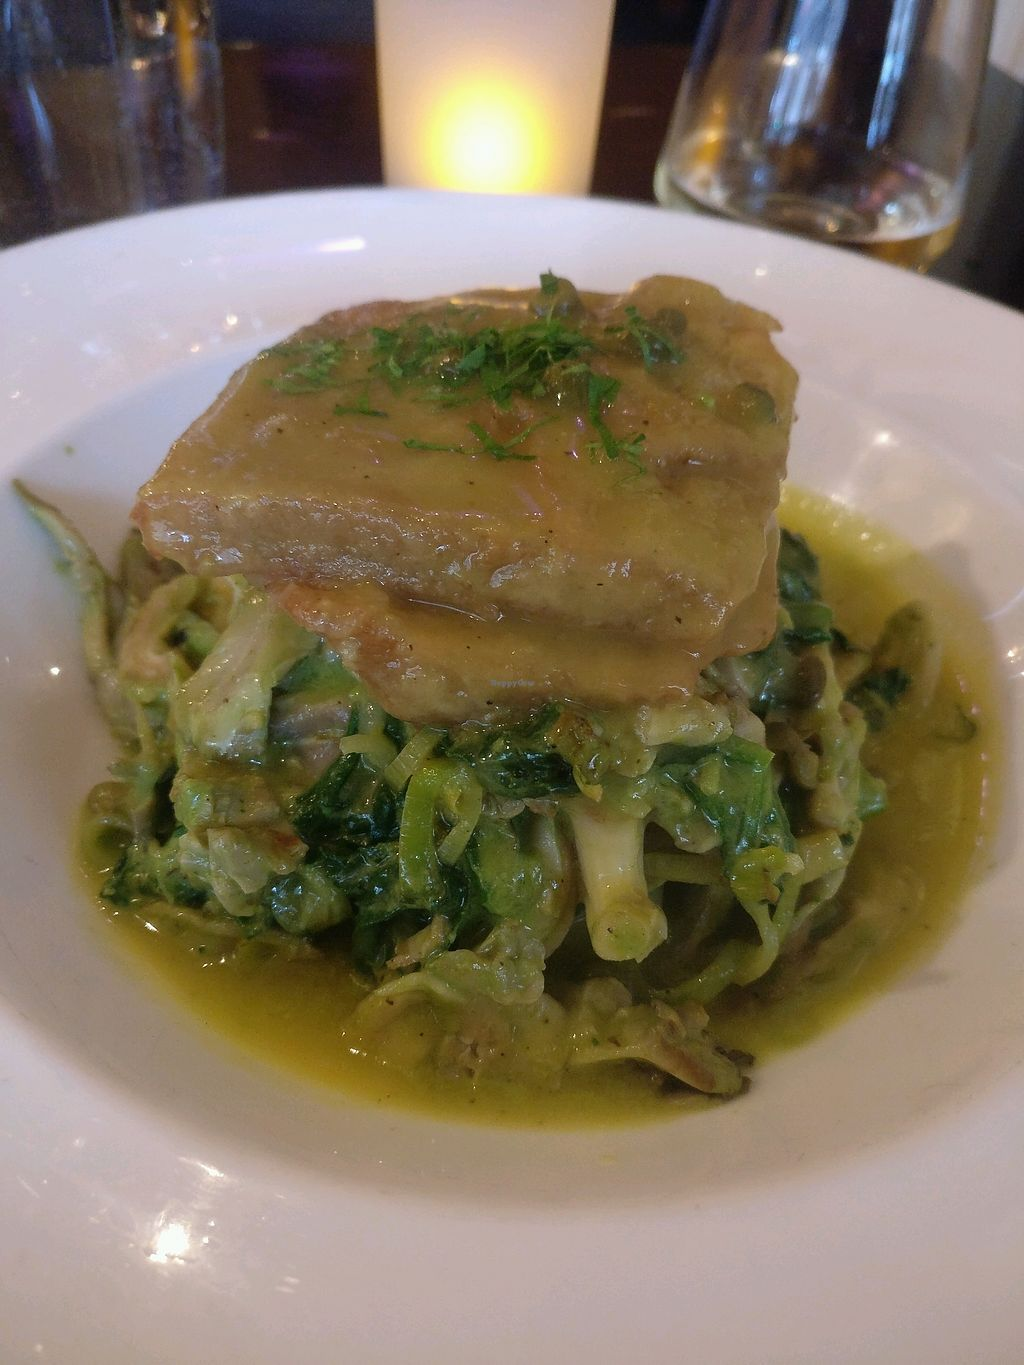 """Photo of Candle Cafe West  by <a href=""""/members/profile/rogueavocado"""">rogueavocado</a> <br/>Seitan piccata <br/> March 30, 2018  - <a href='/contact/abuse/image/31715/378518'>Report</a>"""